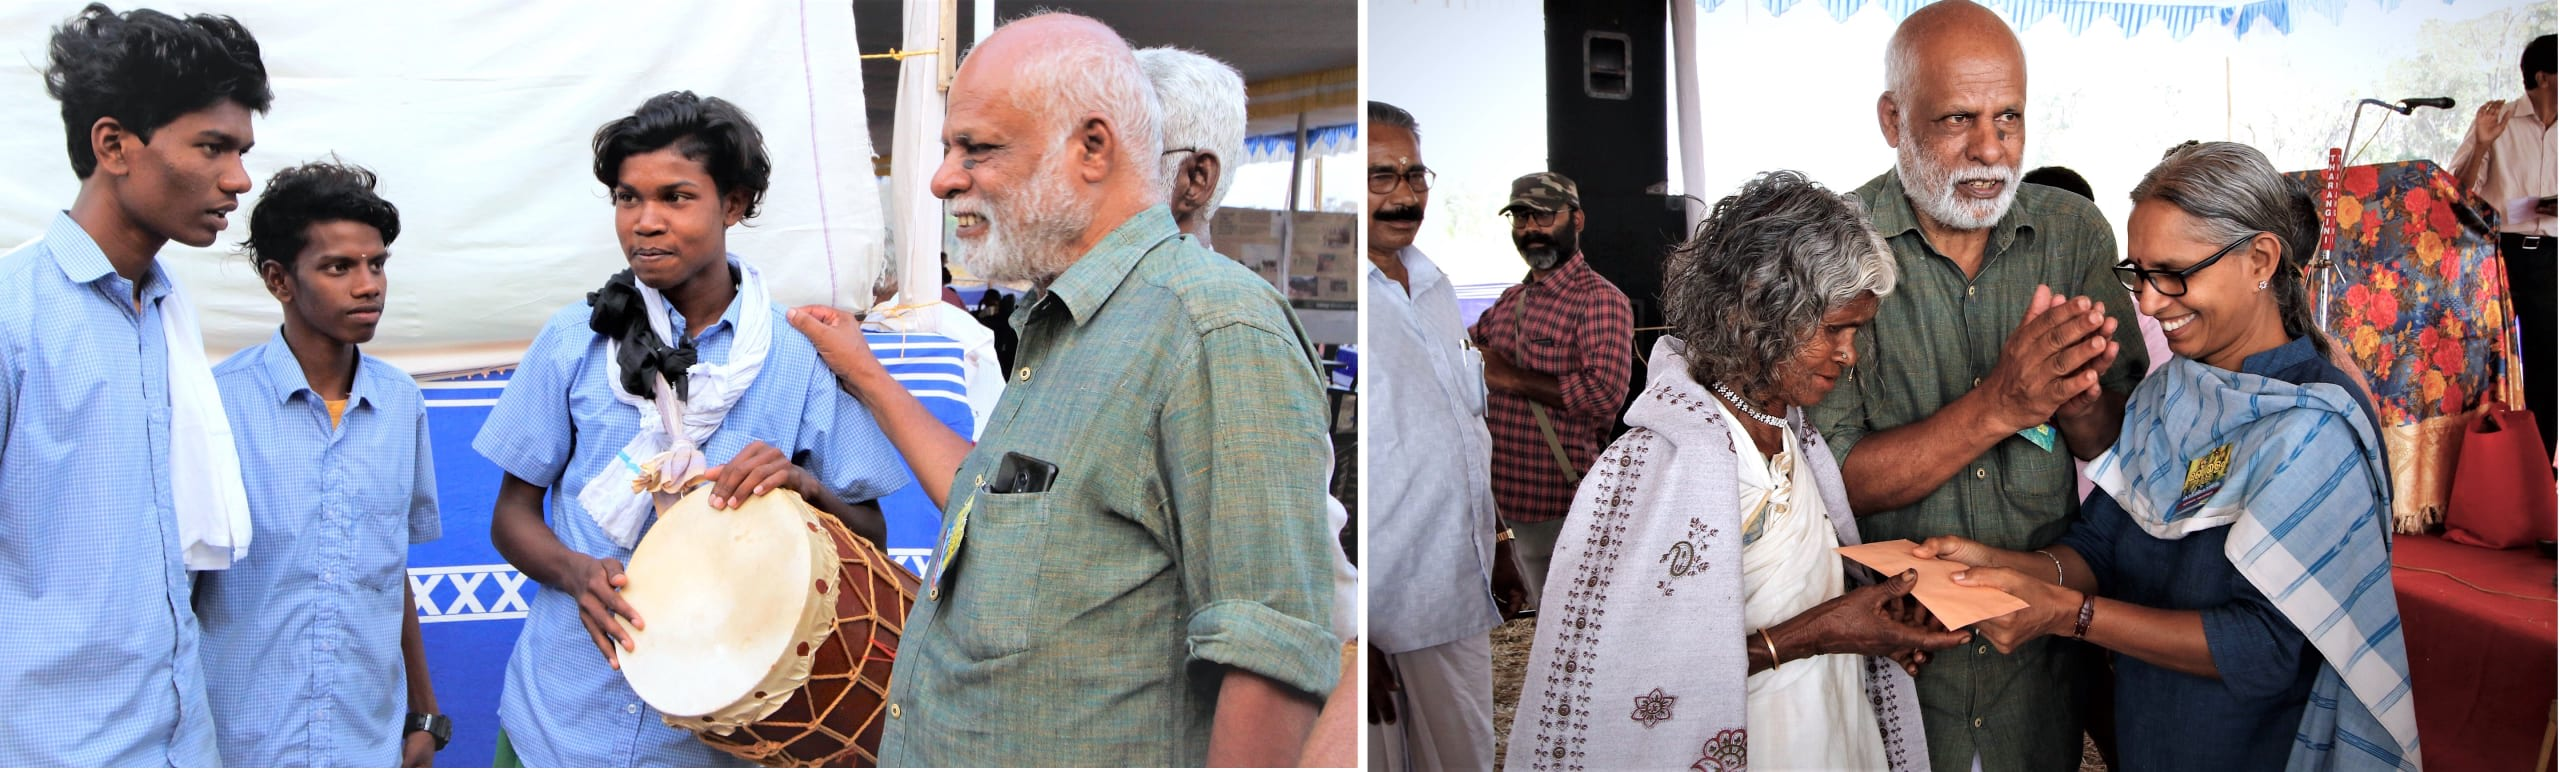 Badusha considers the upliftment of Wayanad's marginalised tribal communities a cause close to his heart. Here he engages with Katunayaka tribal youth (left) and felicitates a tribal farmer (right) along with Usha Soolapani from the NGO Thanal at events held in Muthanga, Wayanad, in 2019.